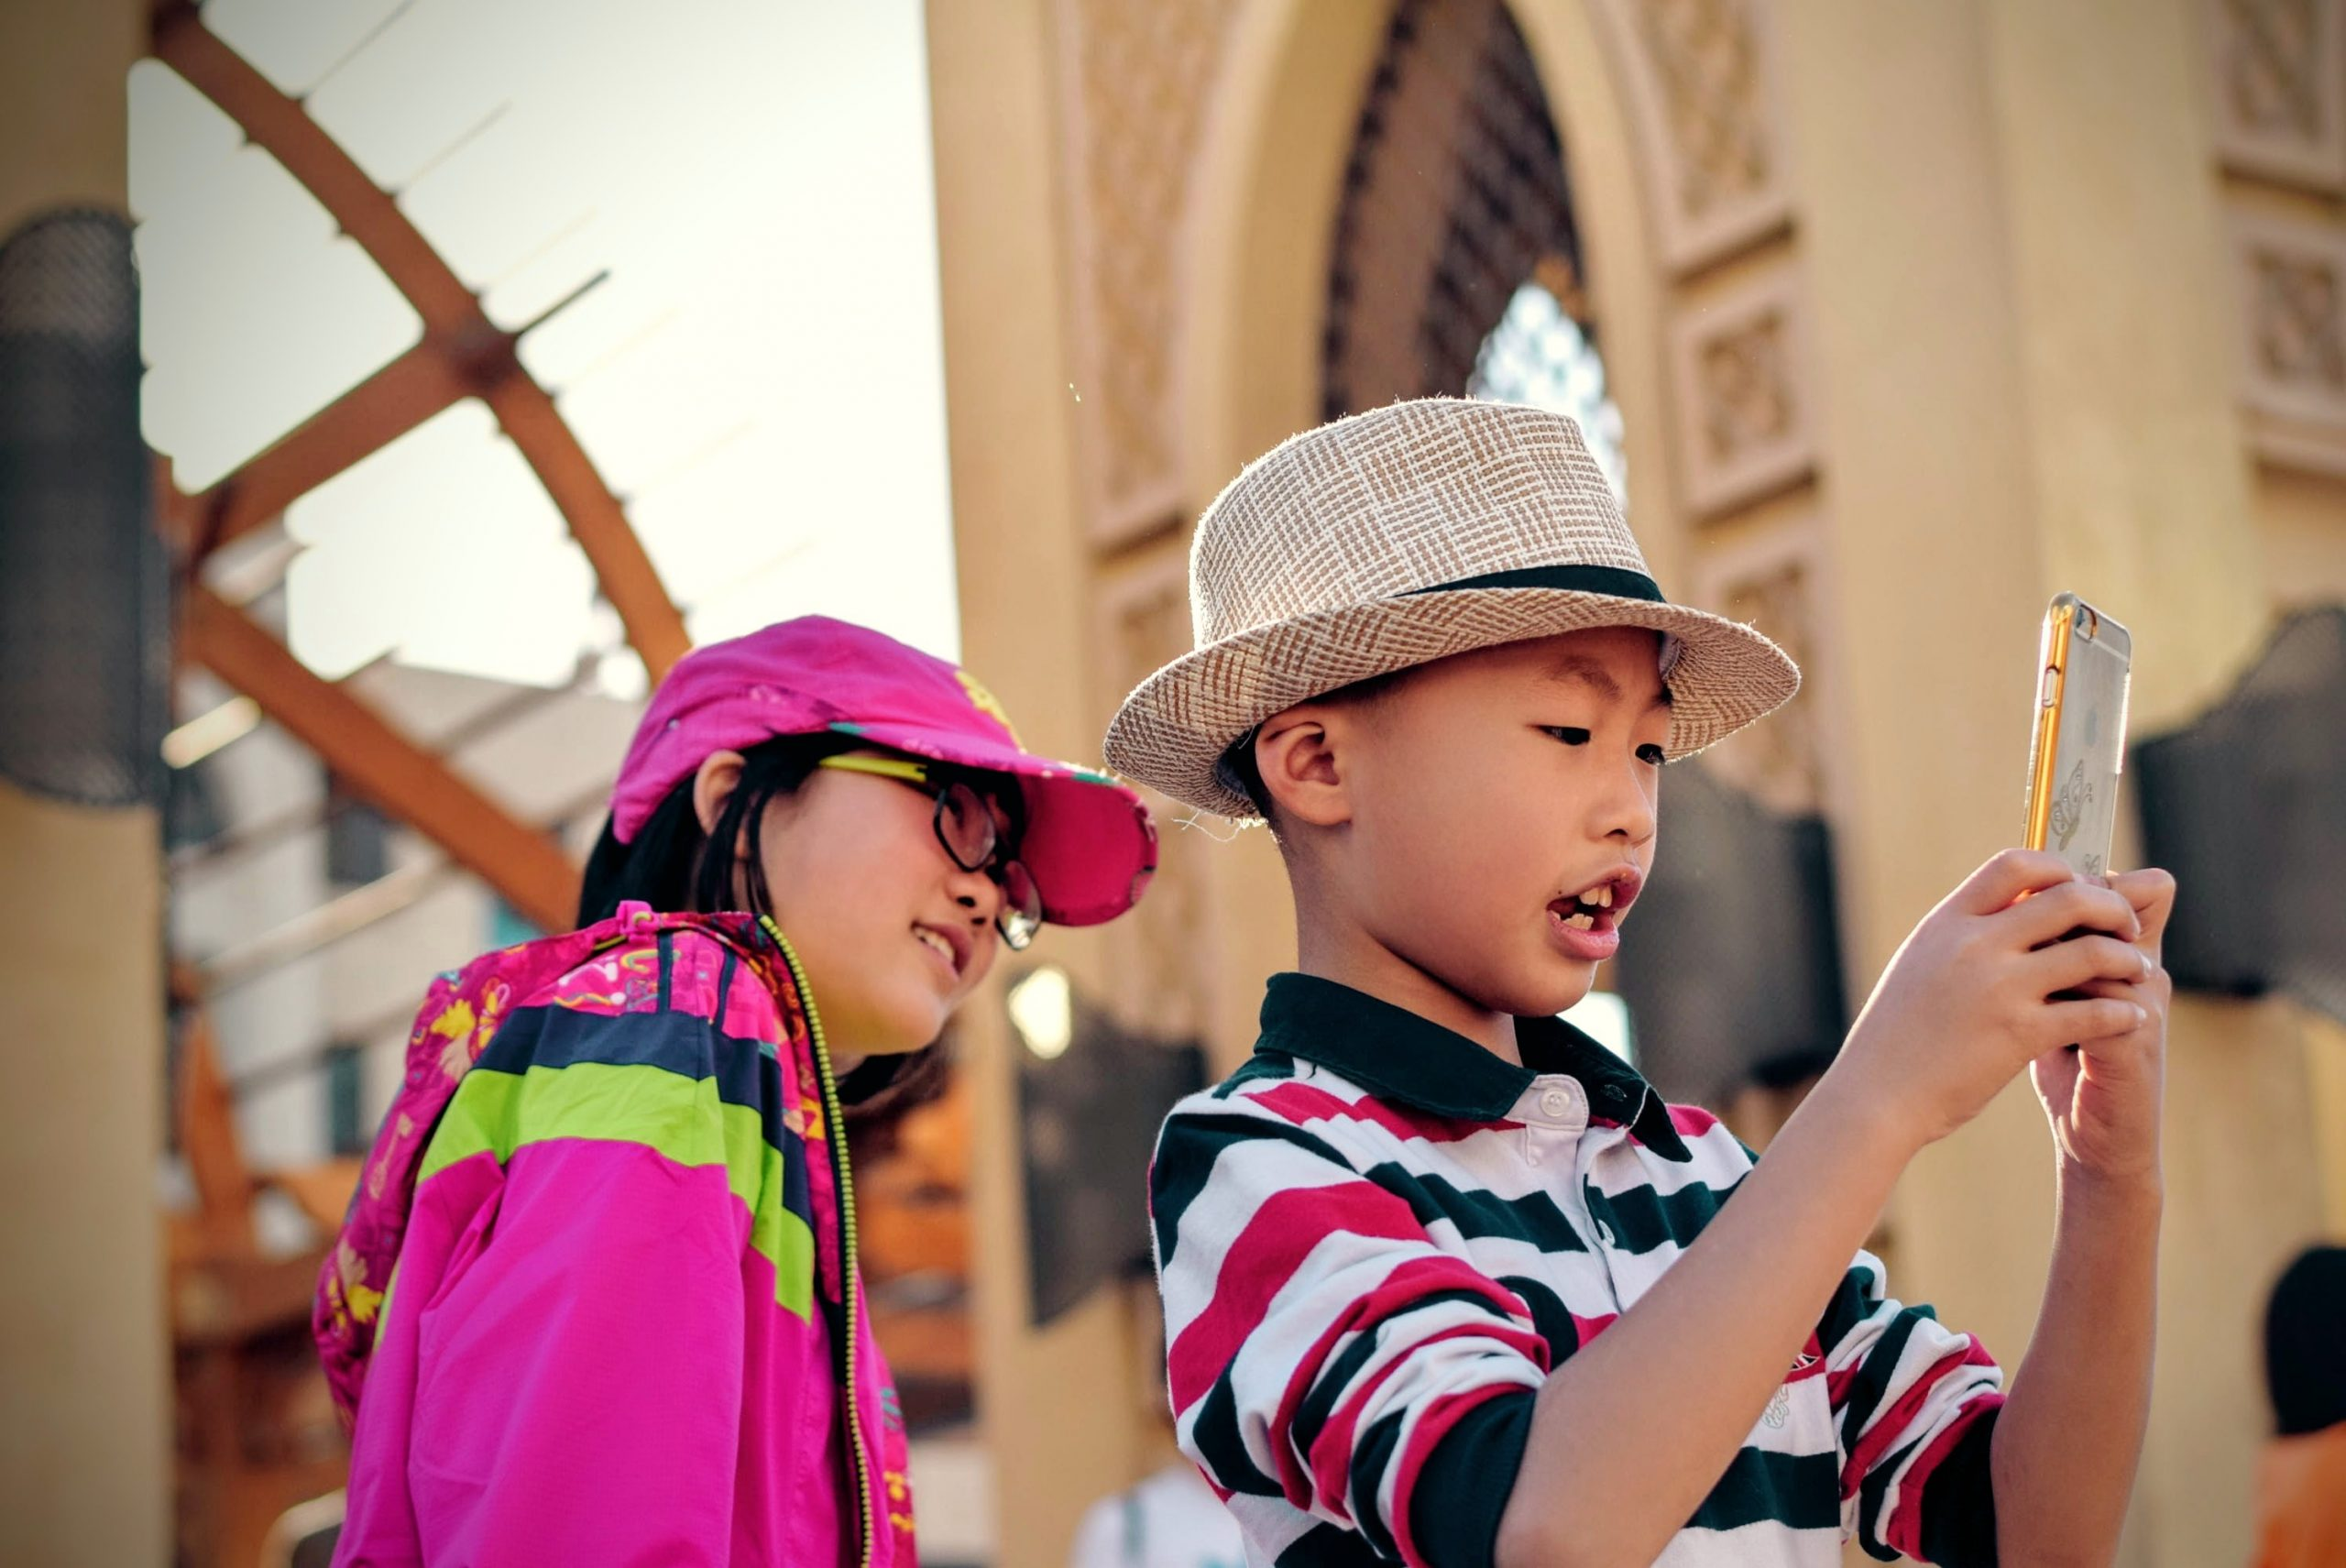 Two children looking at a smartphone